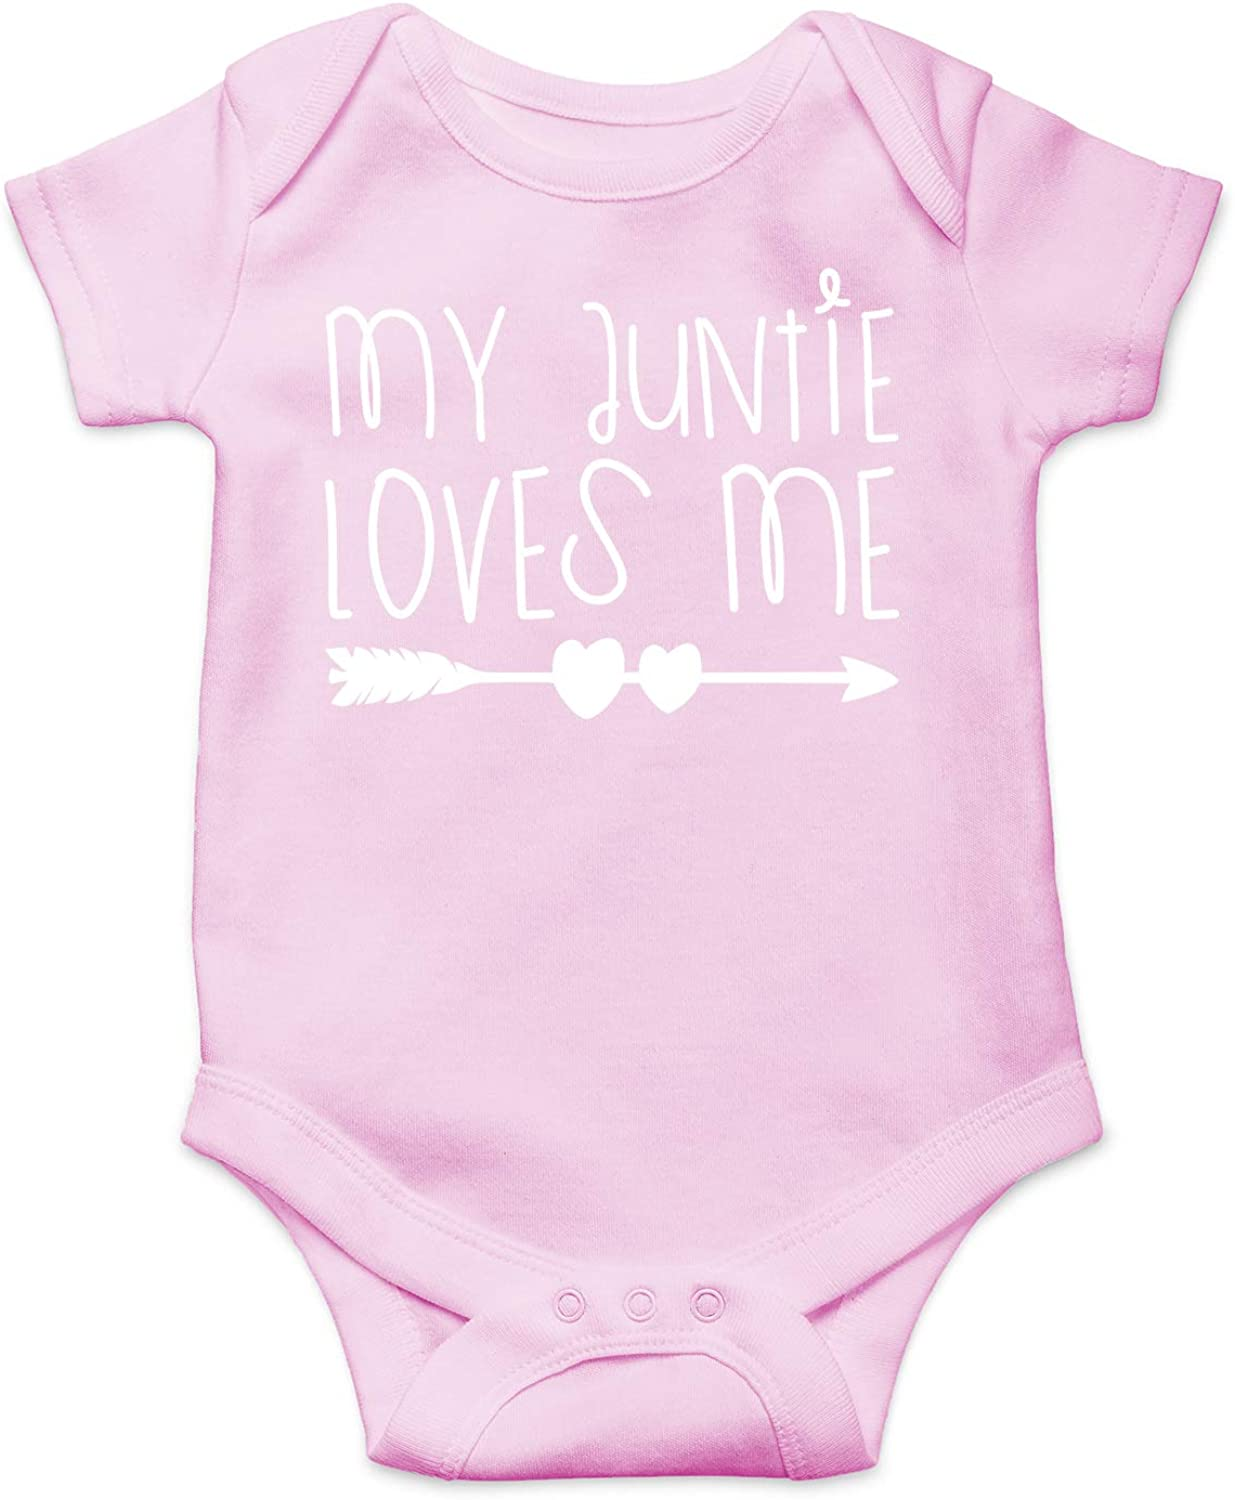 My Auntie Loves Me - Funny for Nephew Niece - Funny Cute Infant Creeper, One-Piece Baby Bodysuit